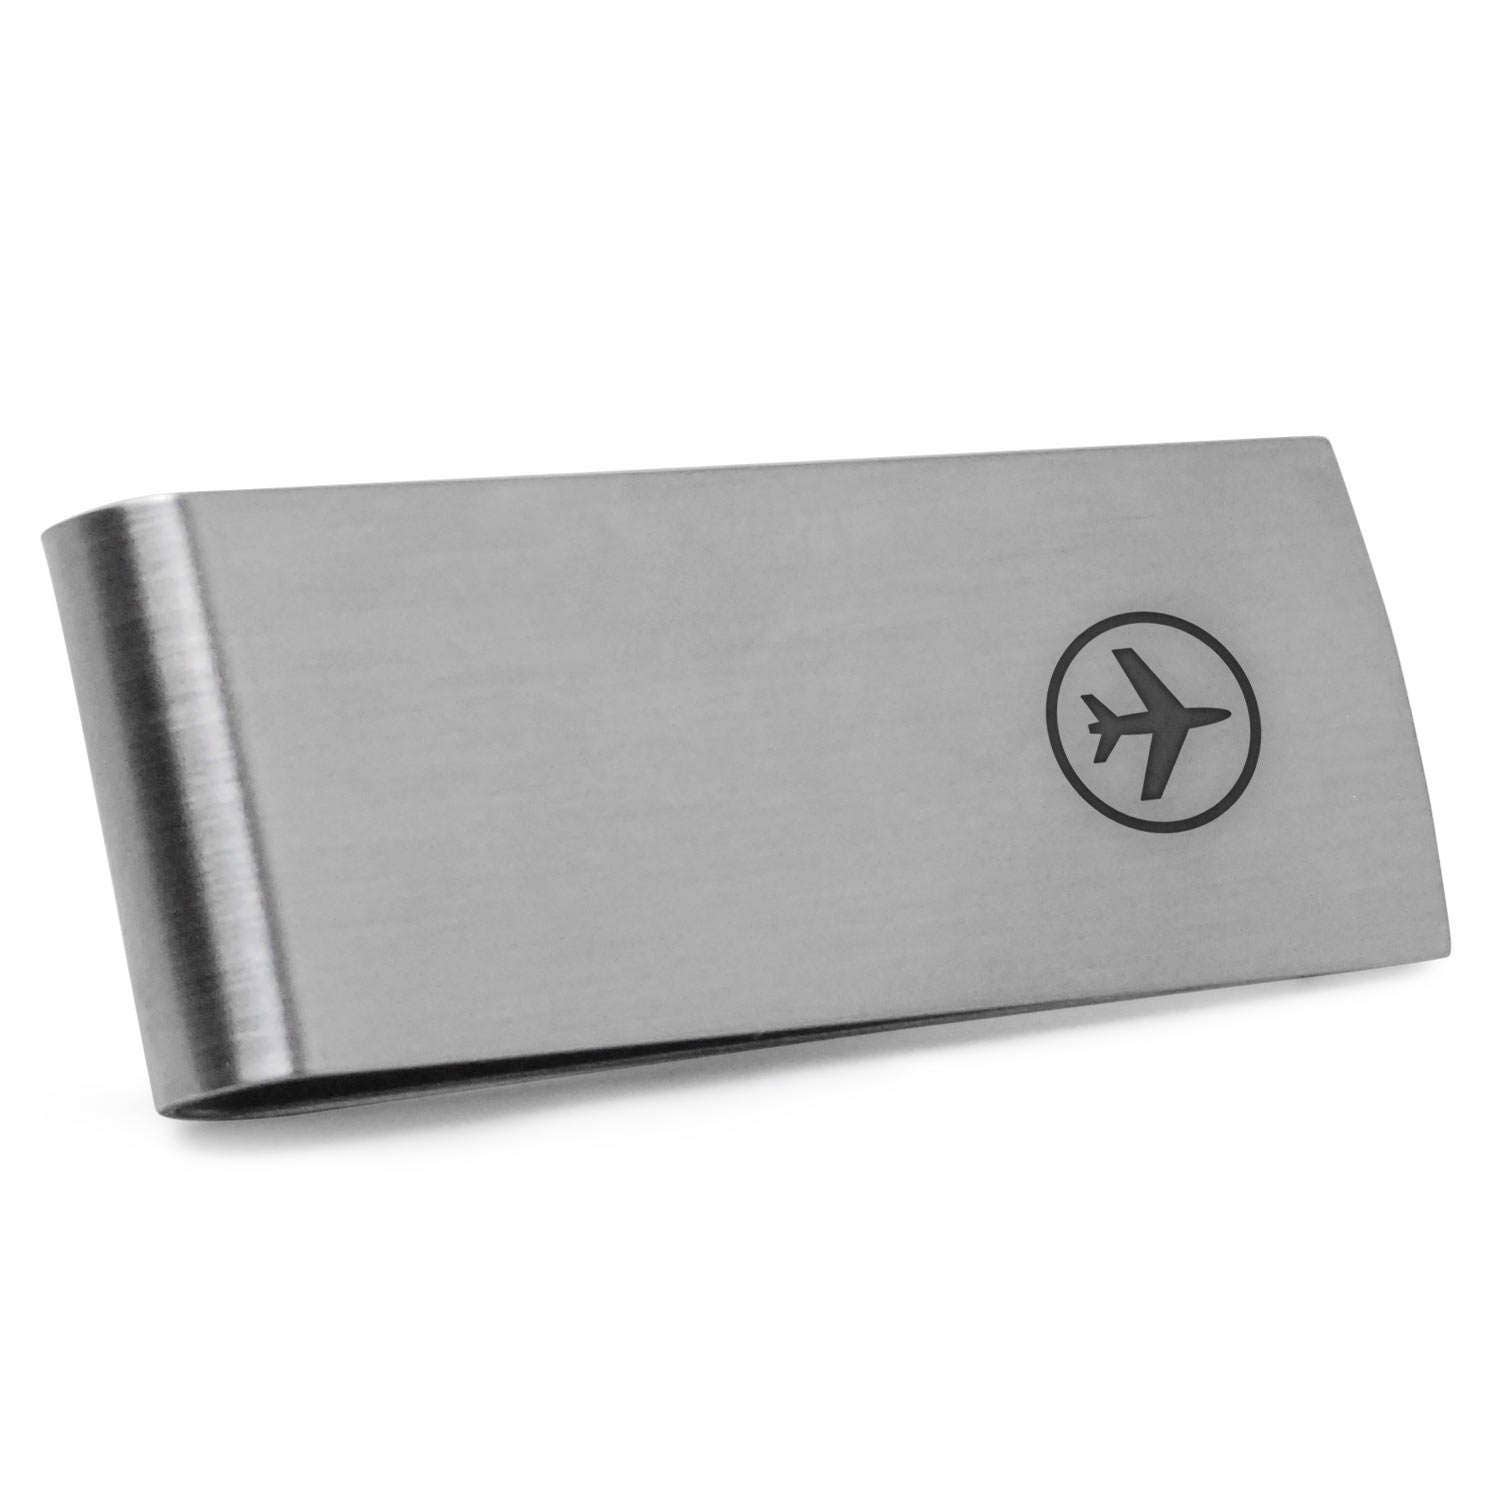 Funny Case Business Card Case Funny Card Case Funny Business